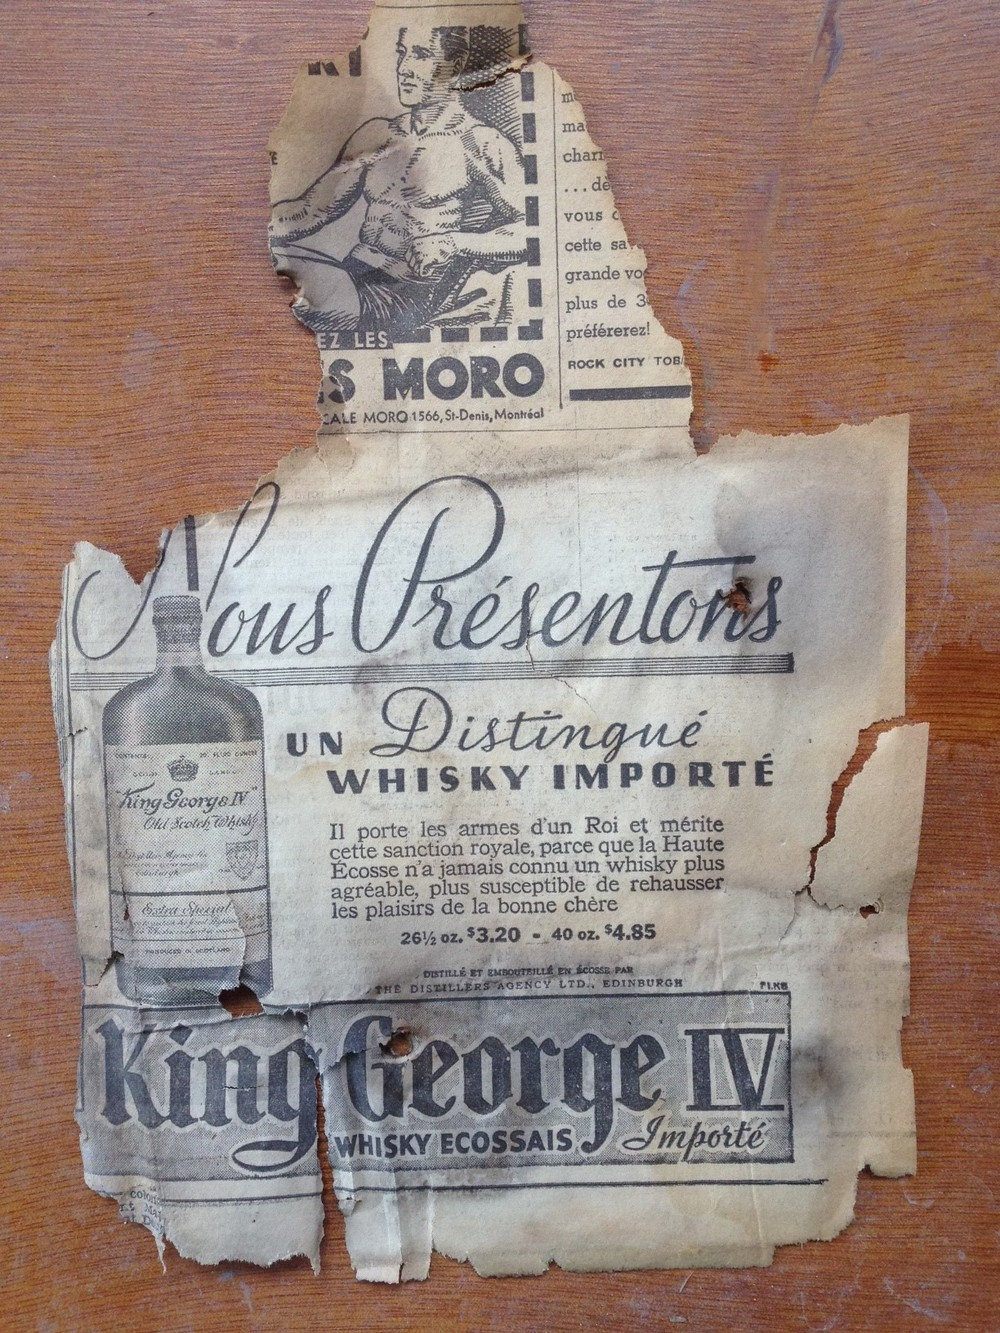 1938 newspaper insulation found underneath flooring - Whisky Advert